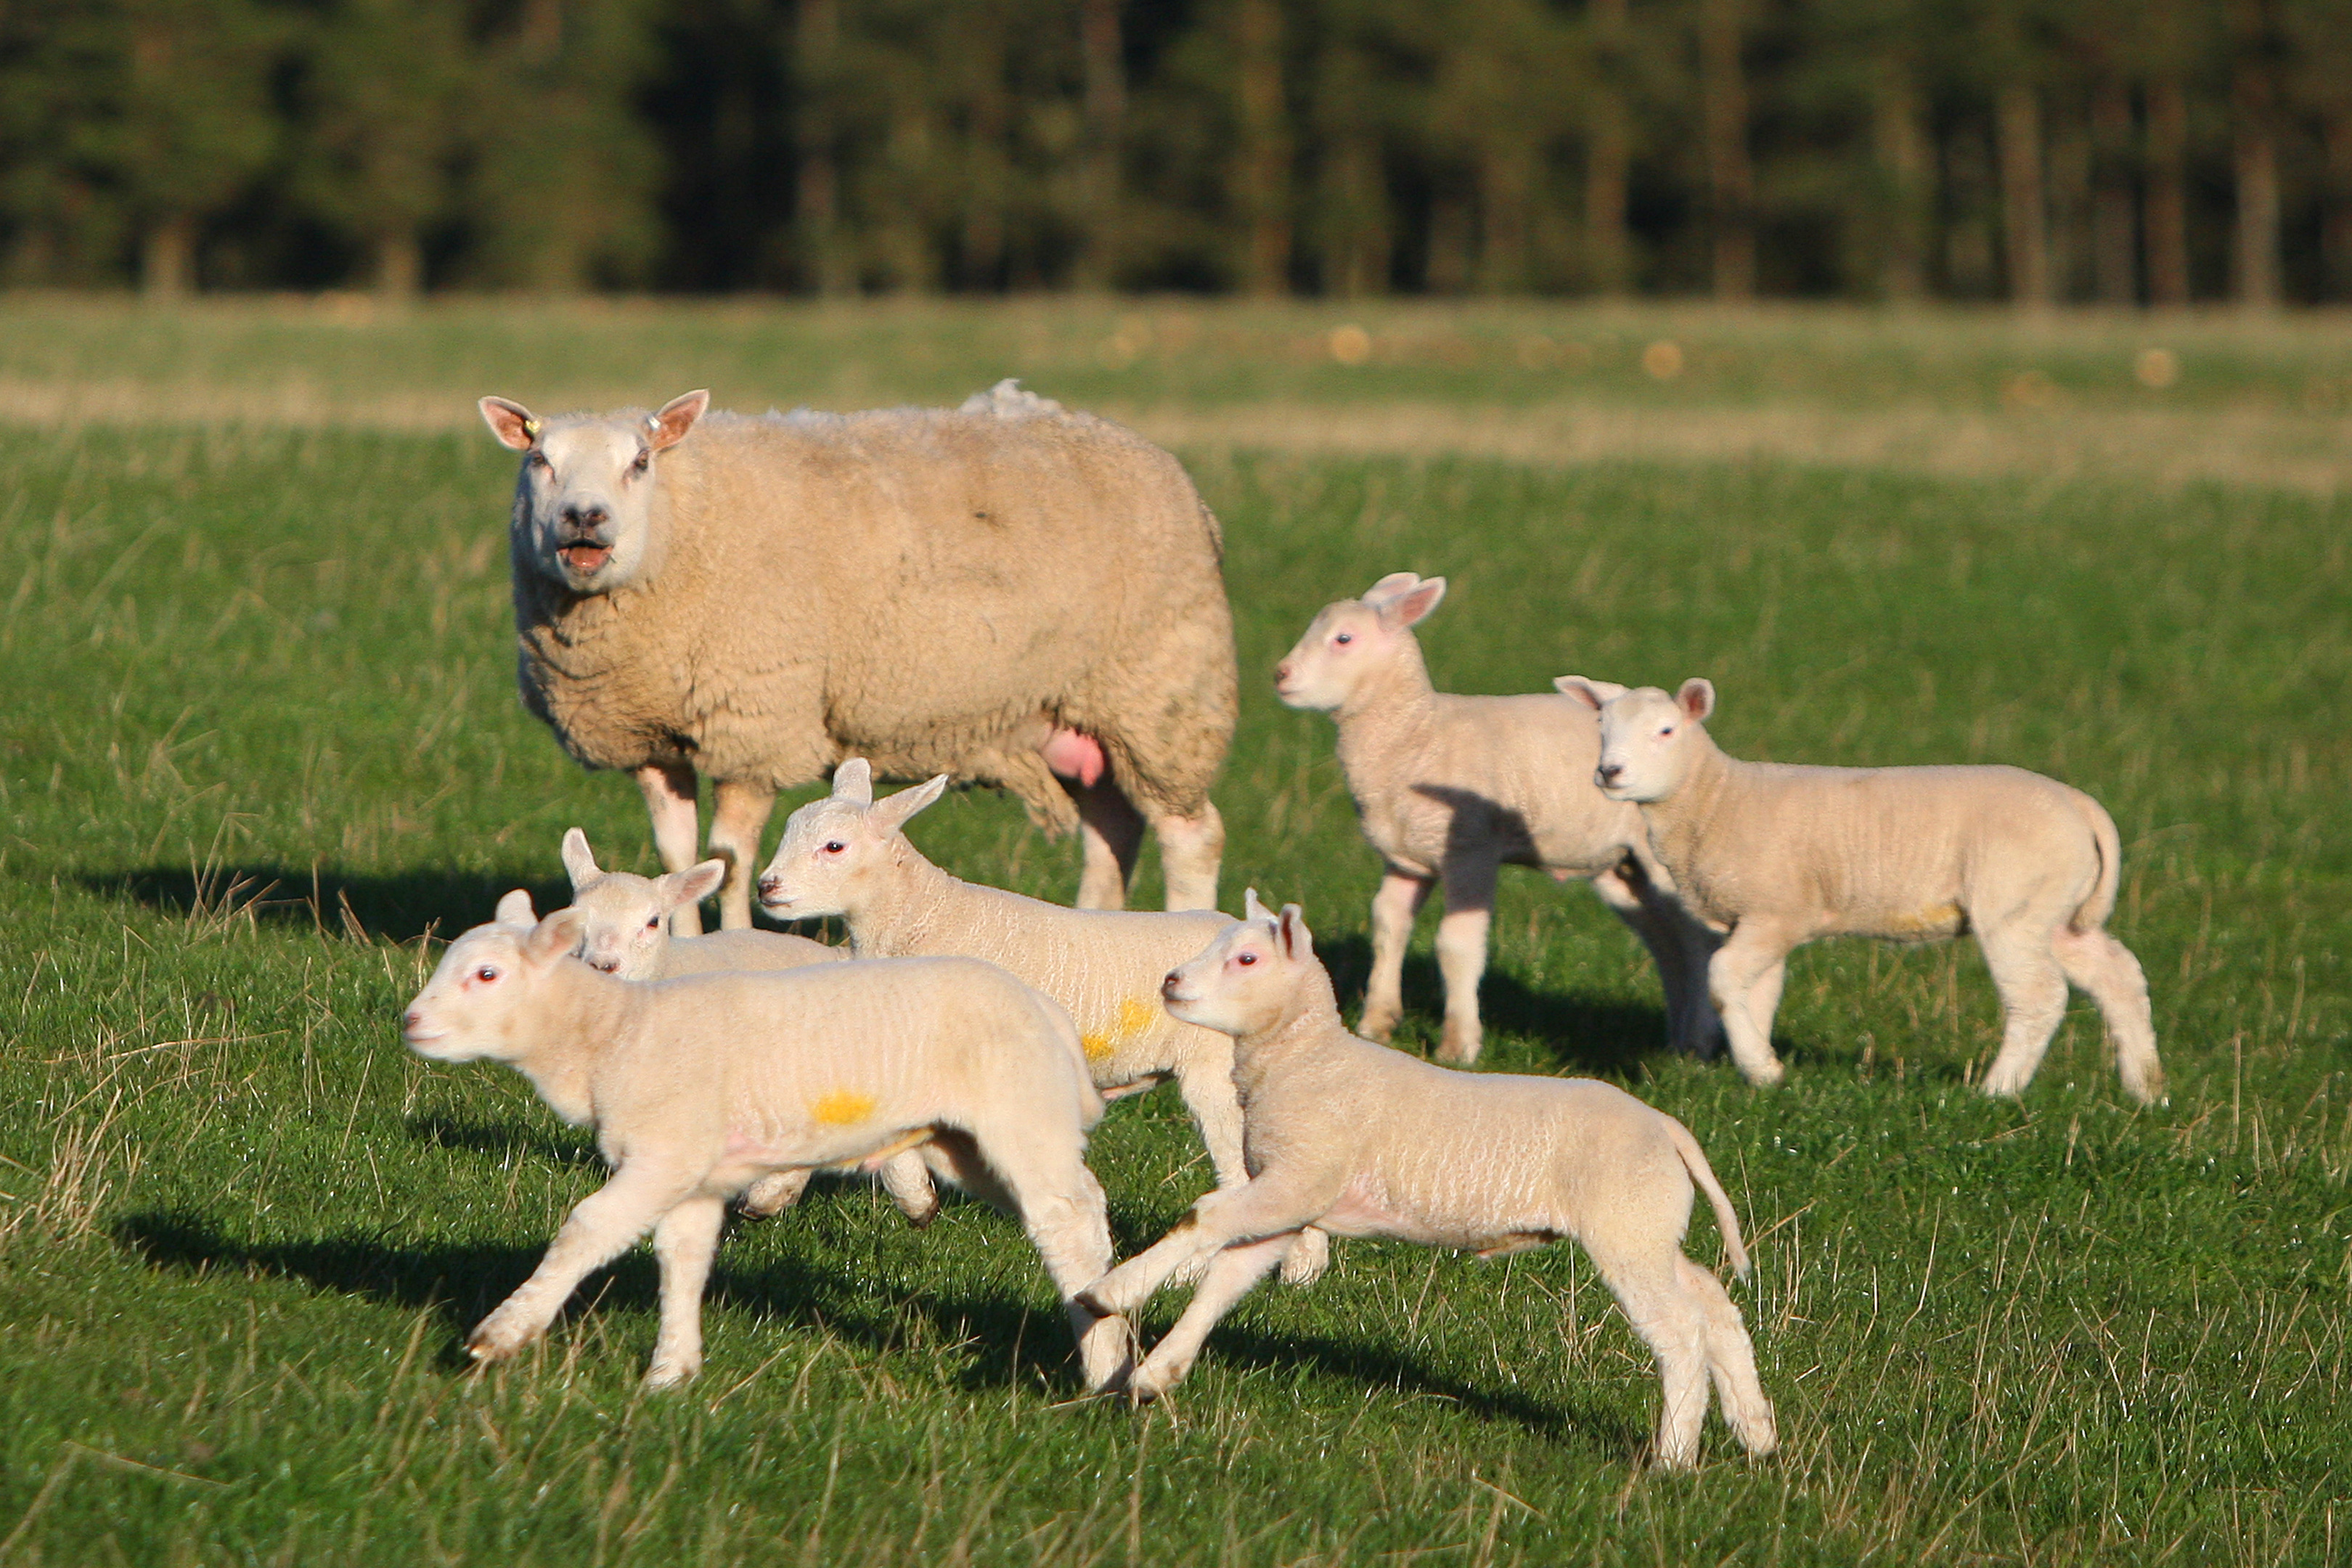 New season lamb prices are 7-8% higher than last year